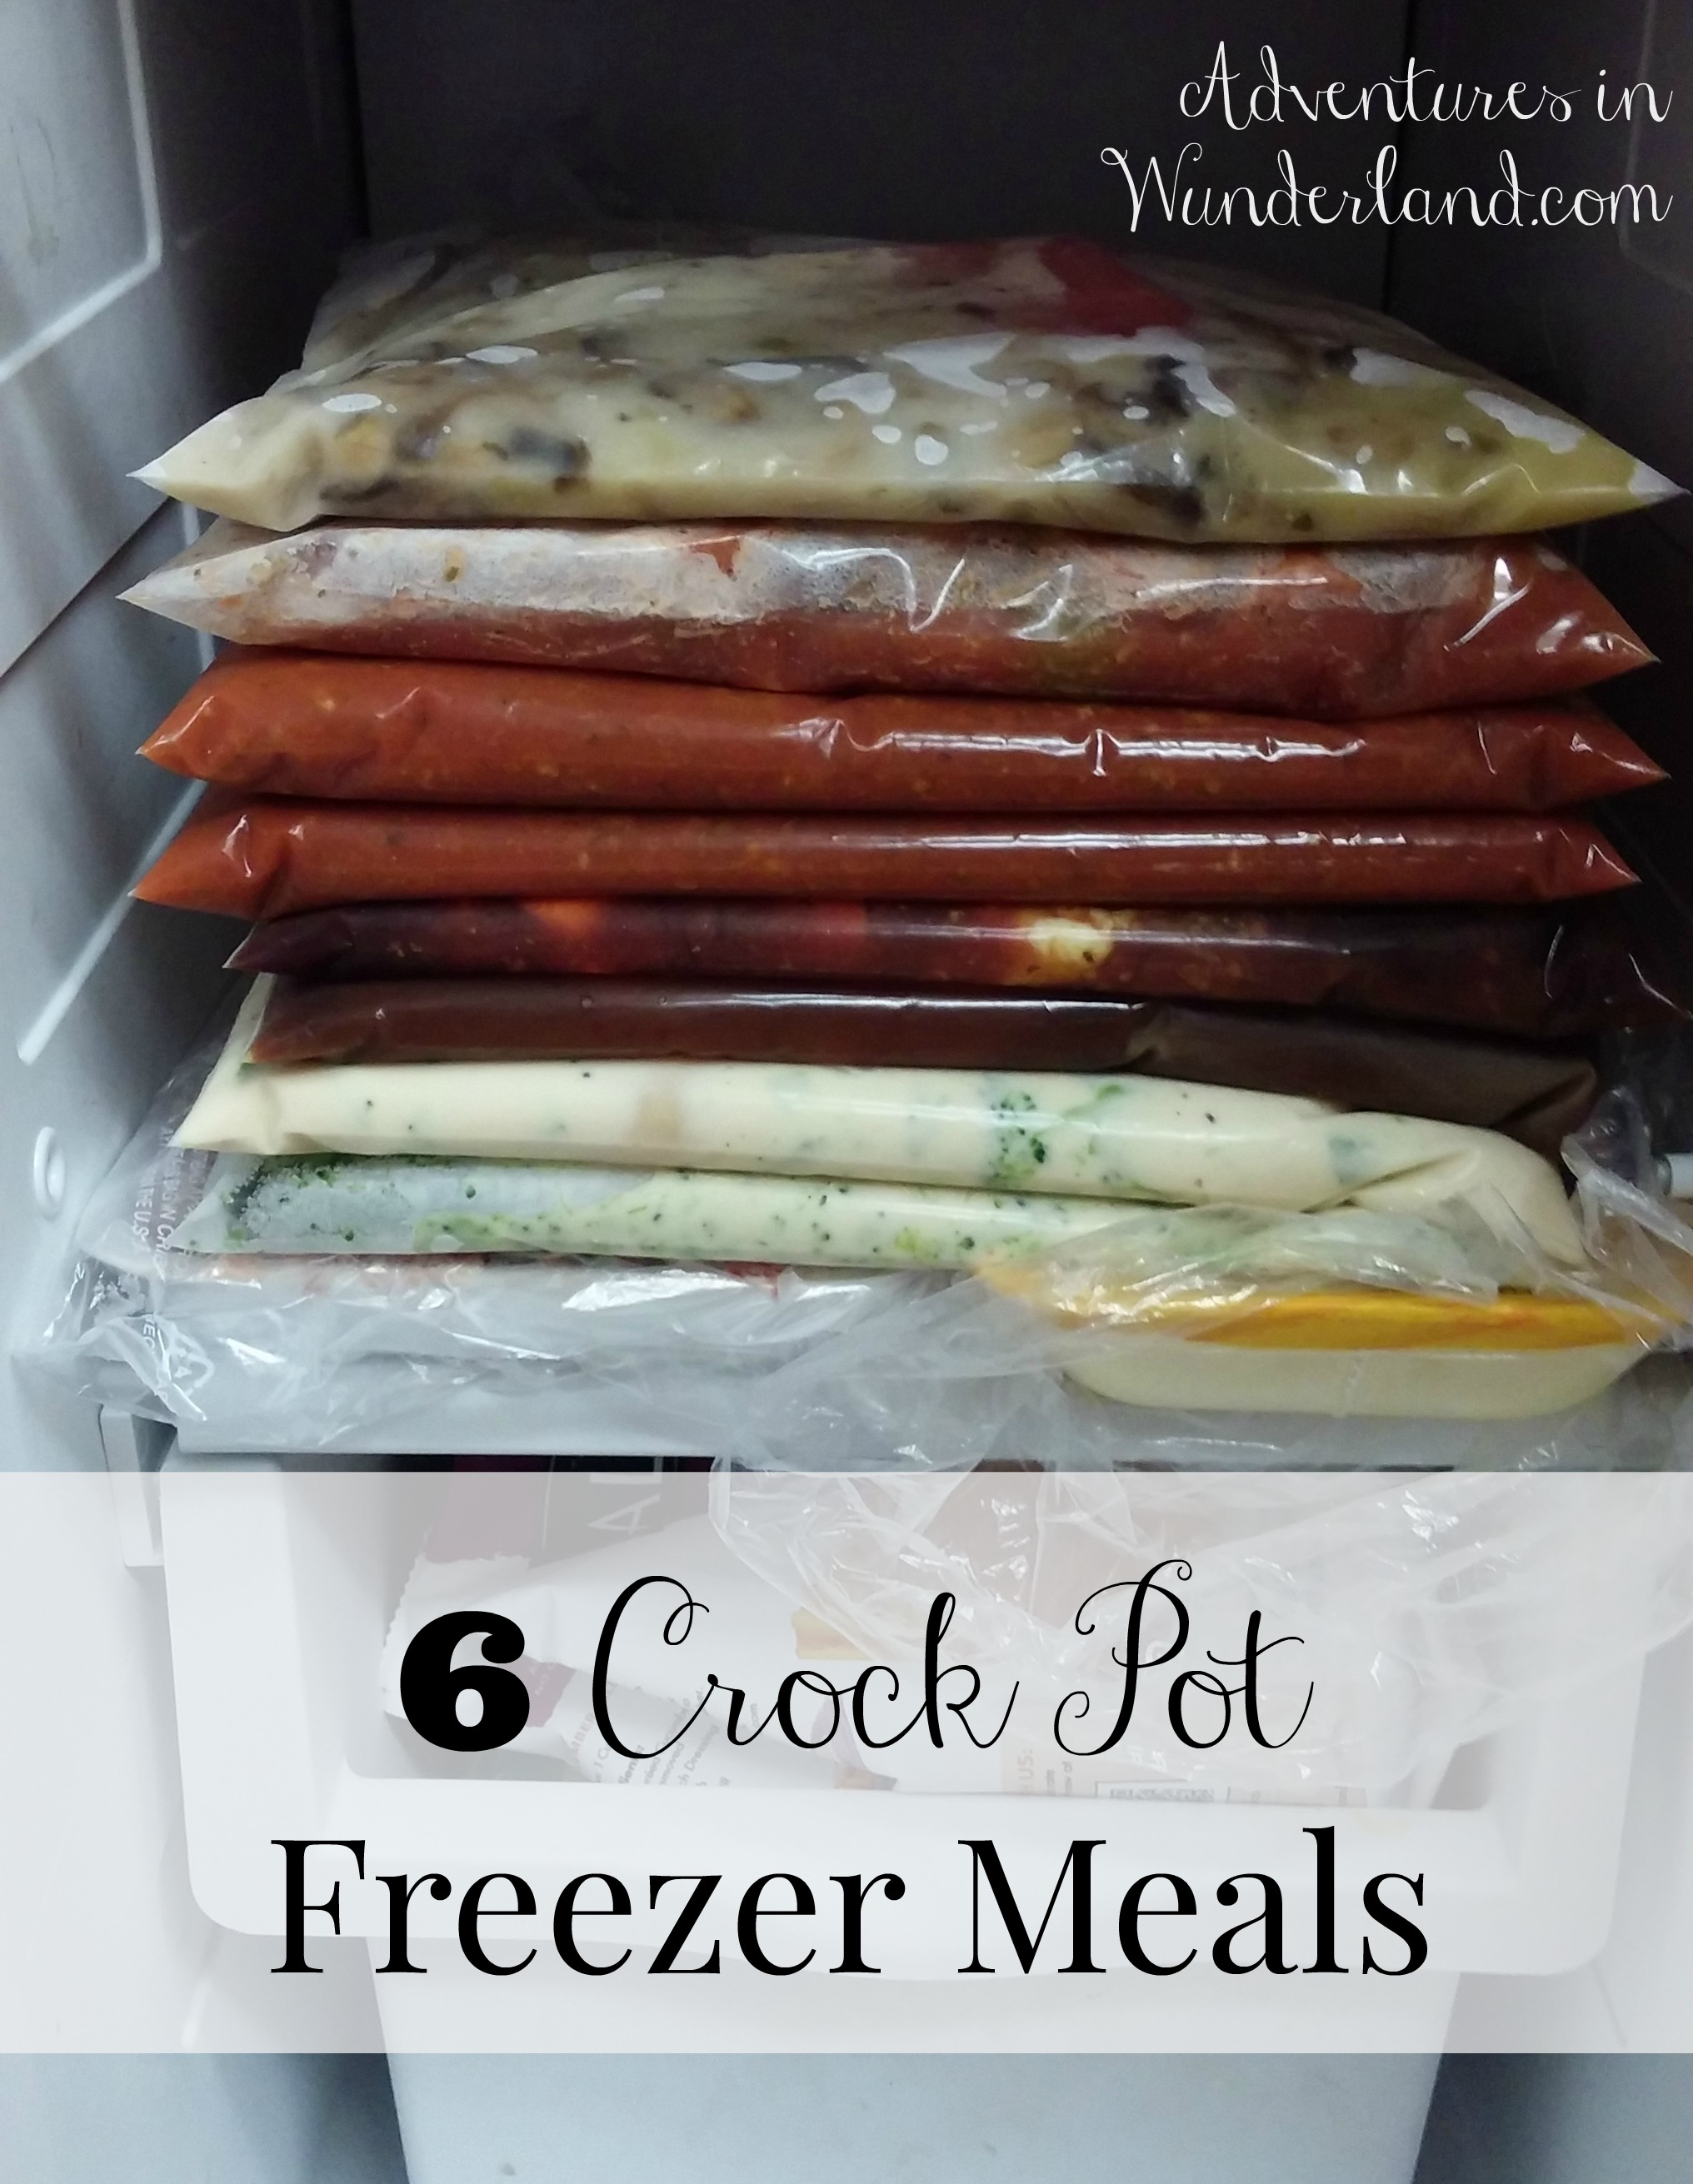 6 Crock Pot Freezer Meals